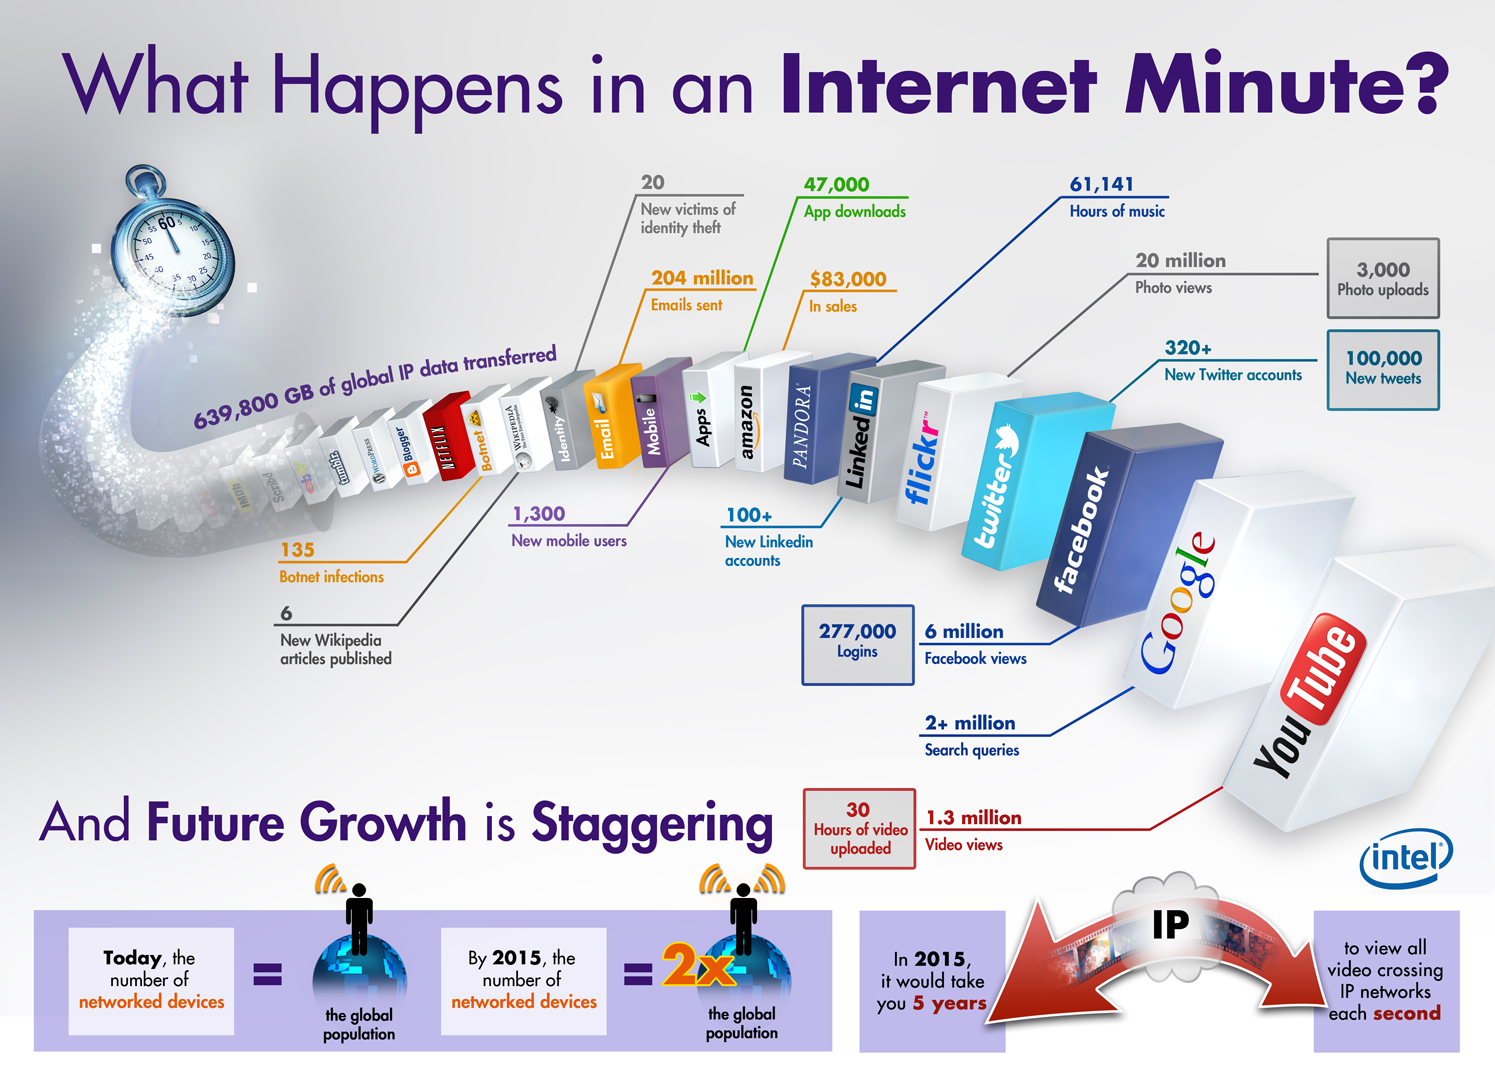 Eine Minute im Internet (Infografik)